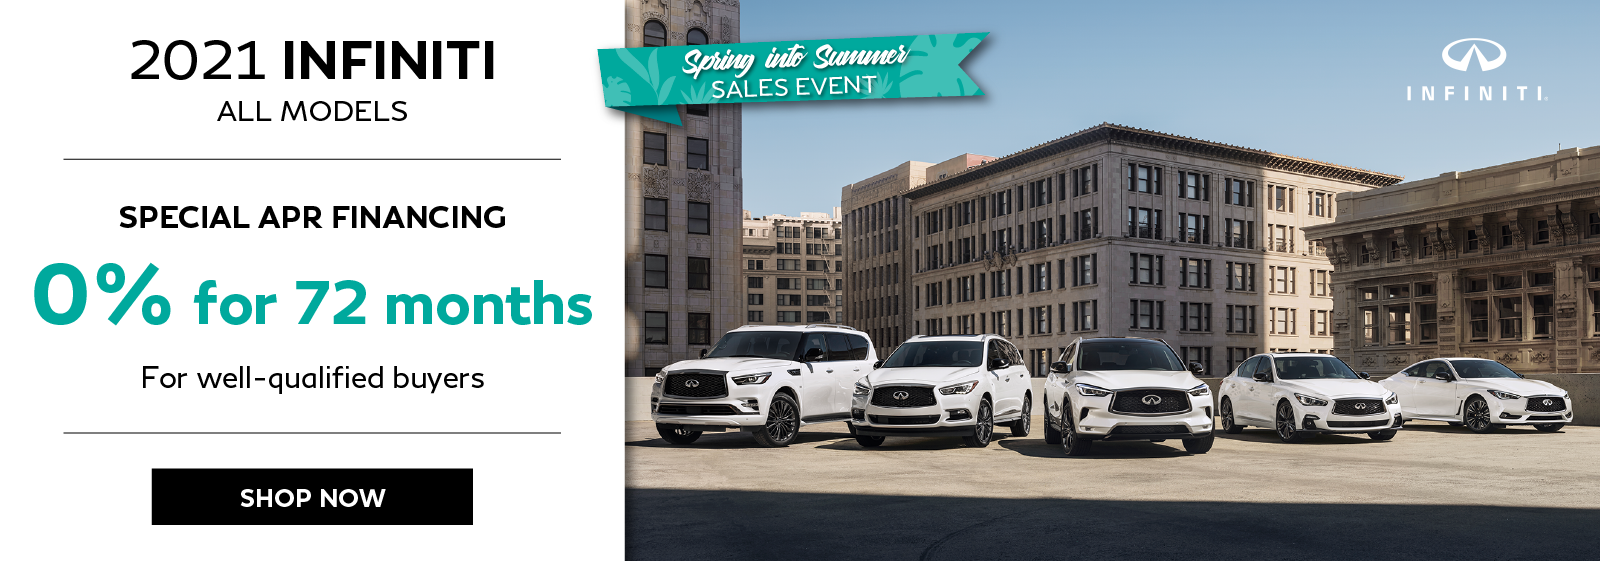 Spring Into Summer Sales Event. 0% APR on all new 2021 INFINITI Models. Click to shop now.